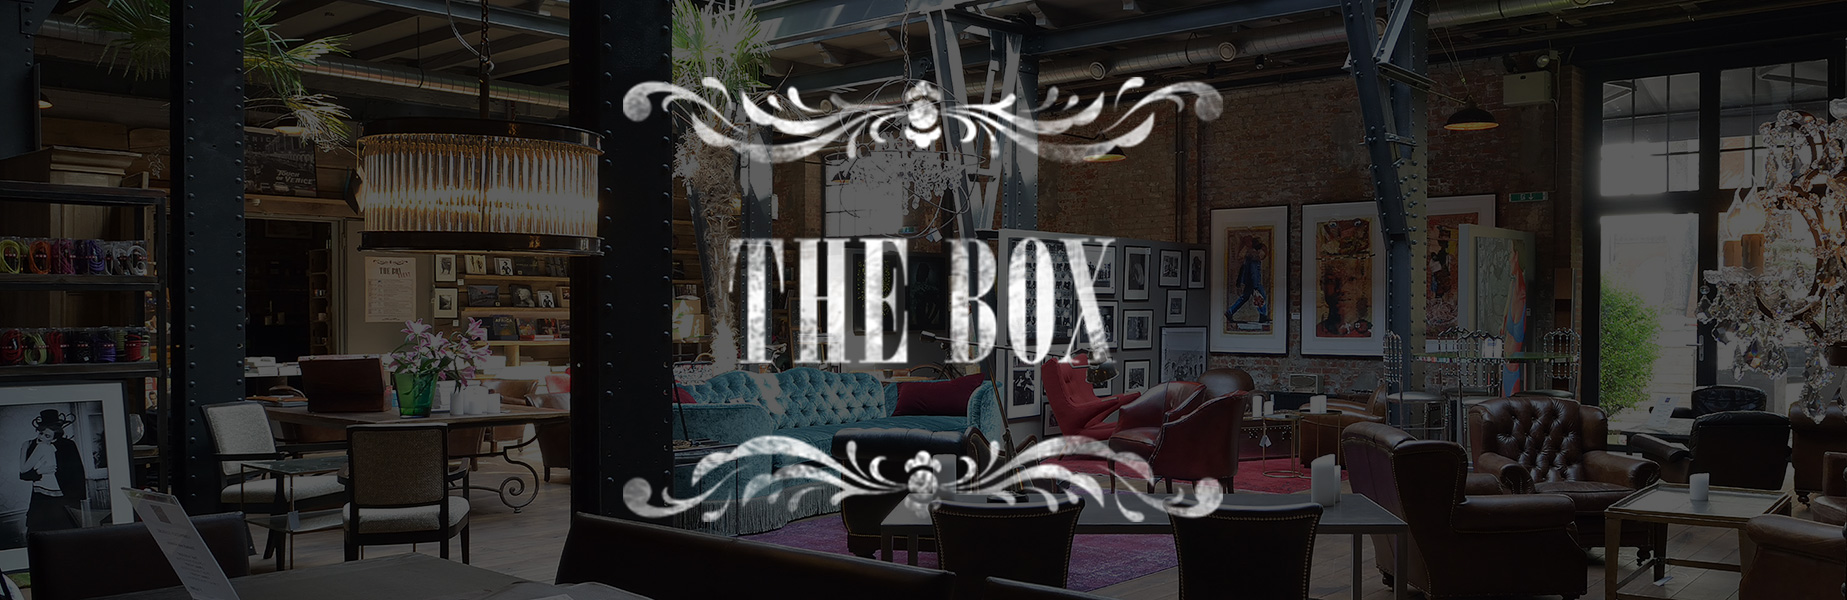 The-Box-Hamburg-Concept-Store